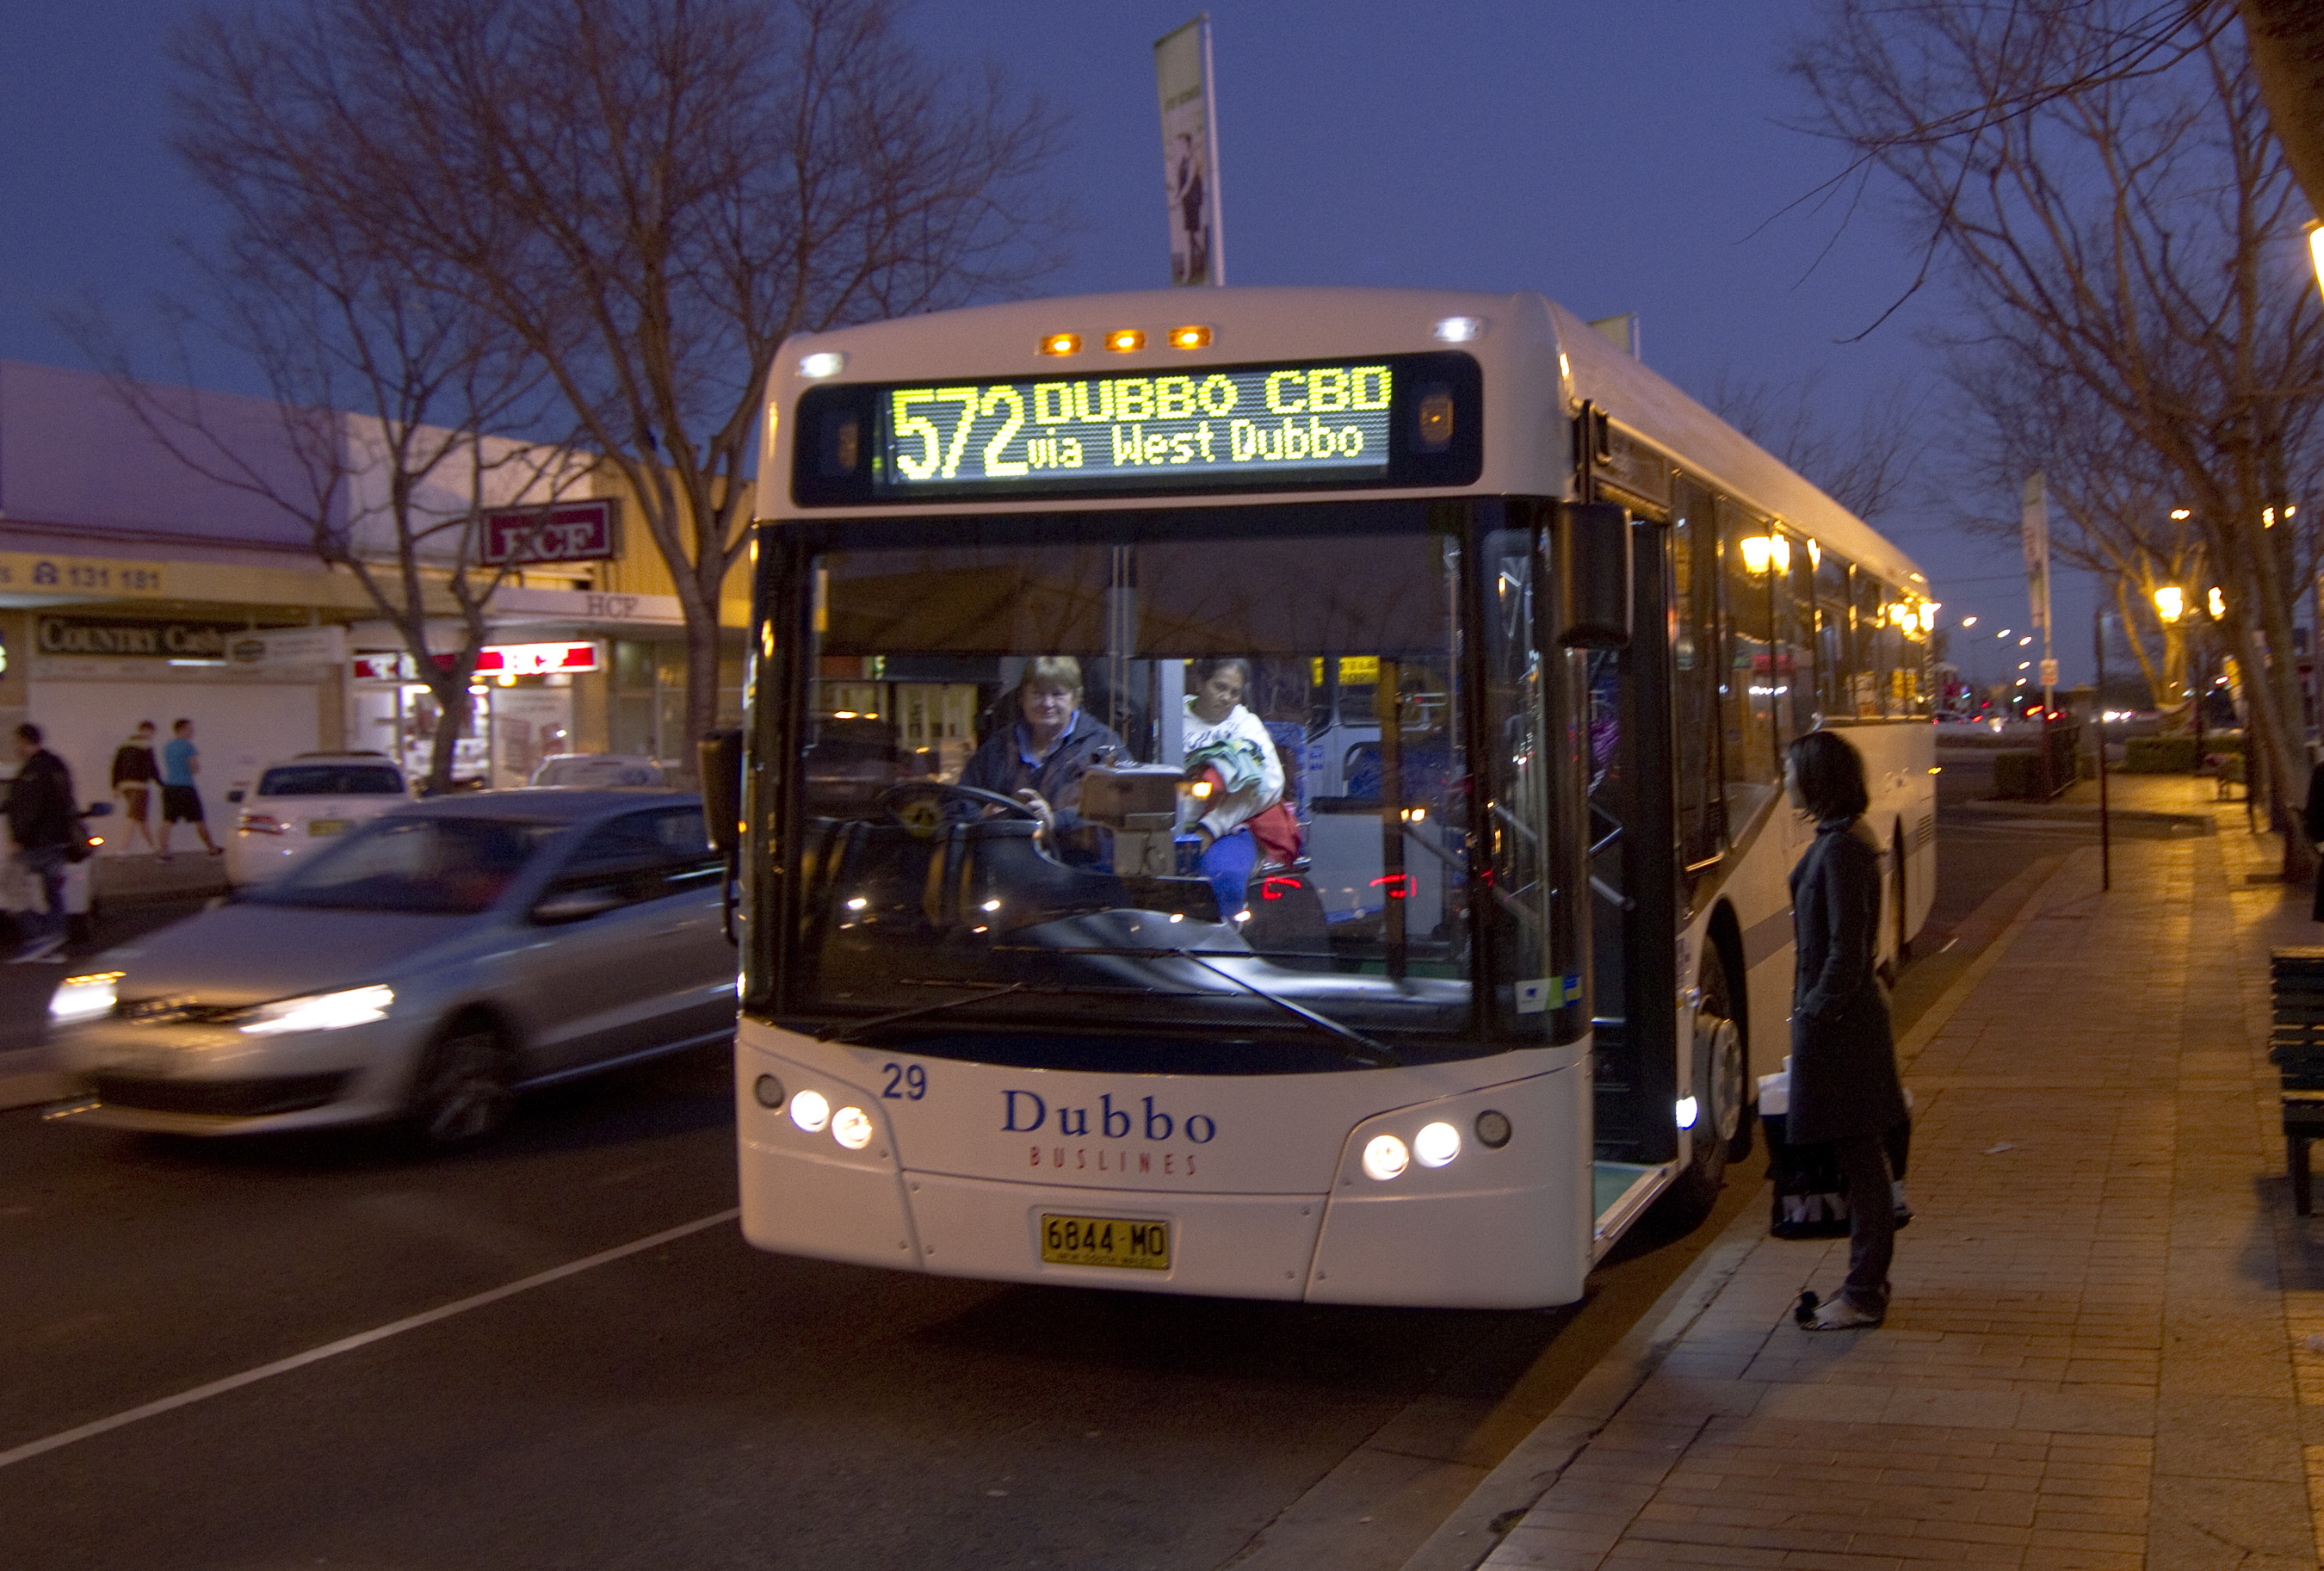 Dubbo Australia  city photos gallery : Dubbo buslines bus route 572 at Dubbo CBD, NSW, Australia